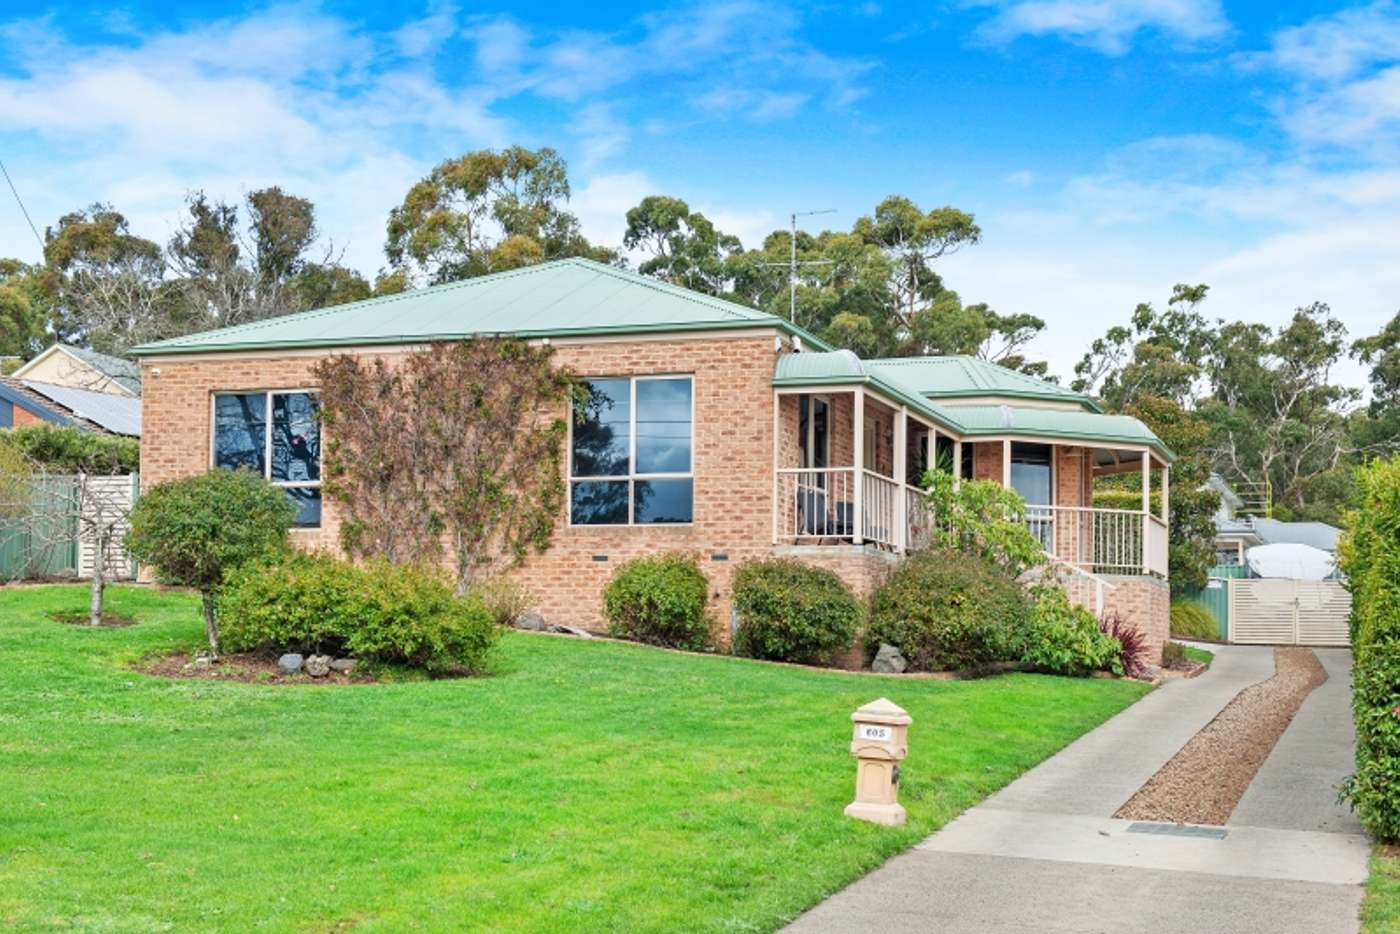 Main view of Homely house listing, 605 Learmonth, Buninyong VIC 3357